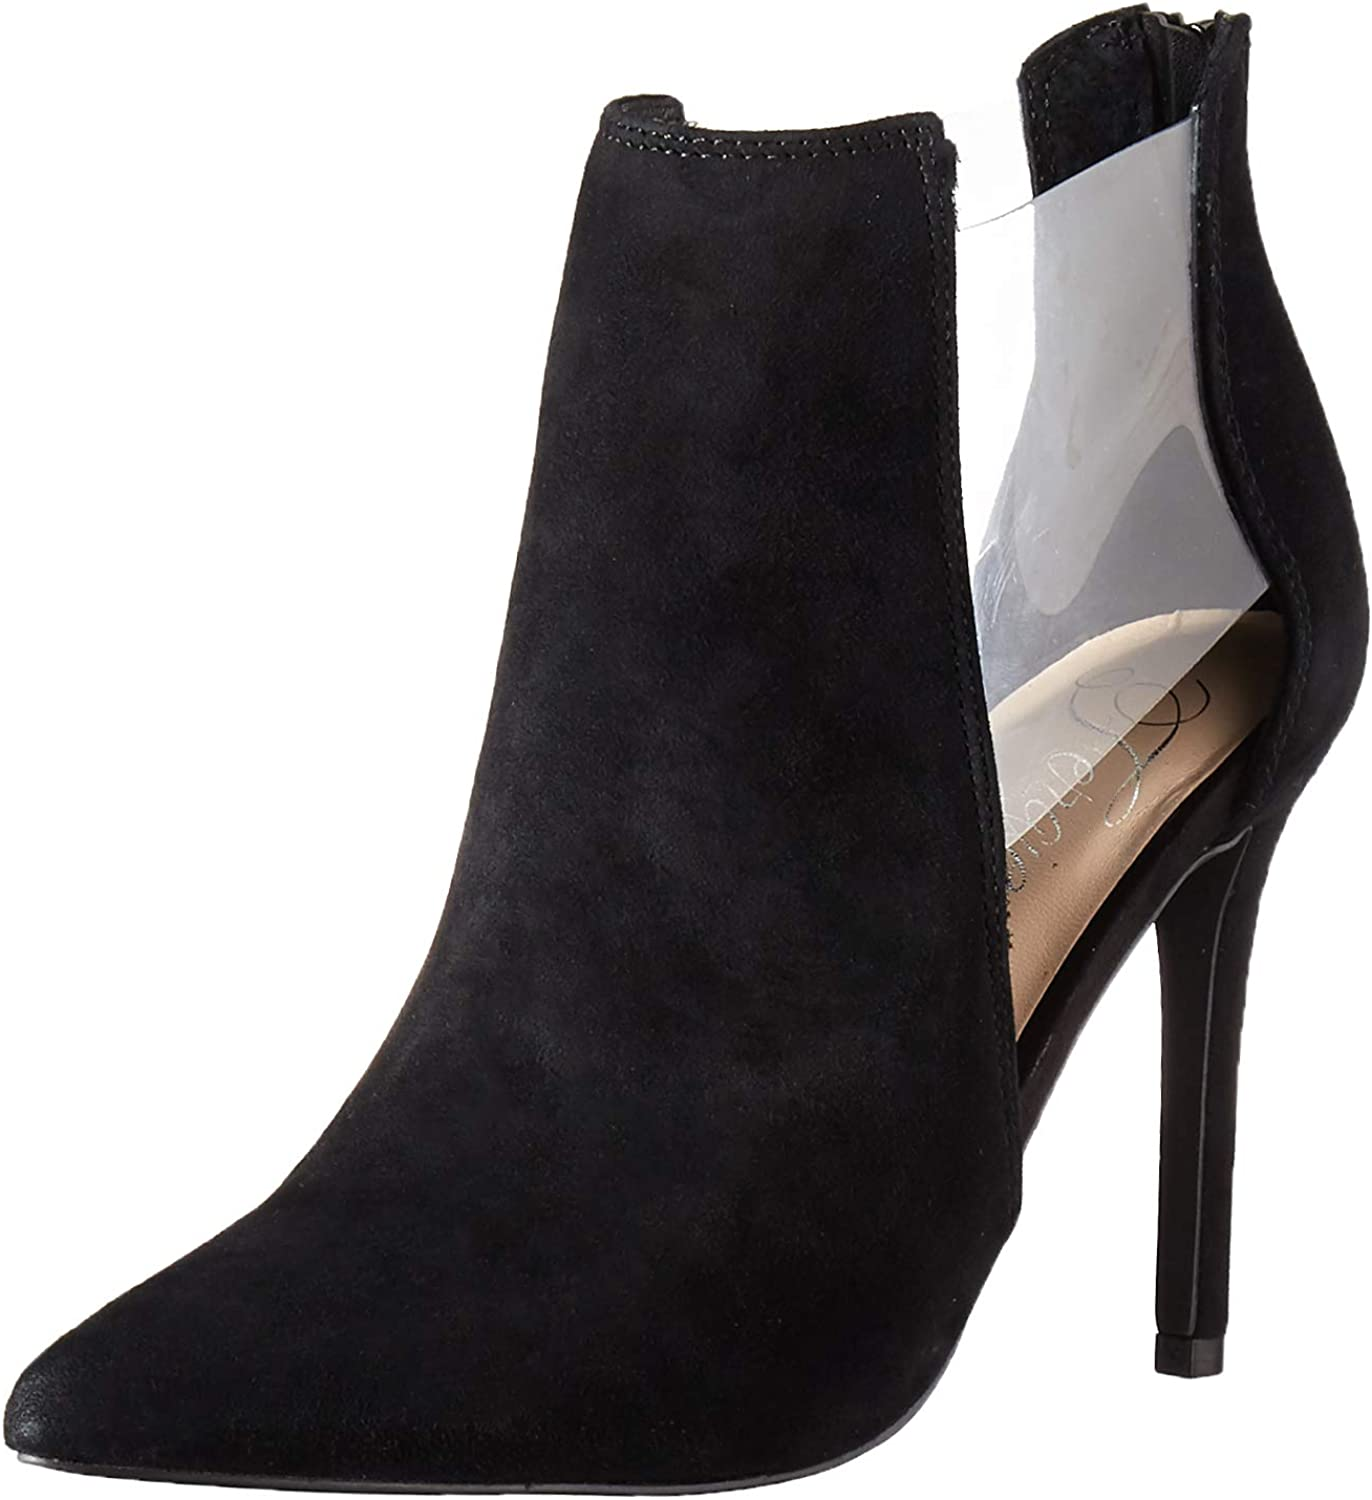 Fergie Womens Arie Ankle Boot